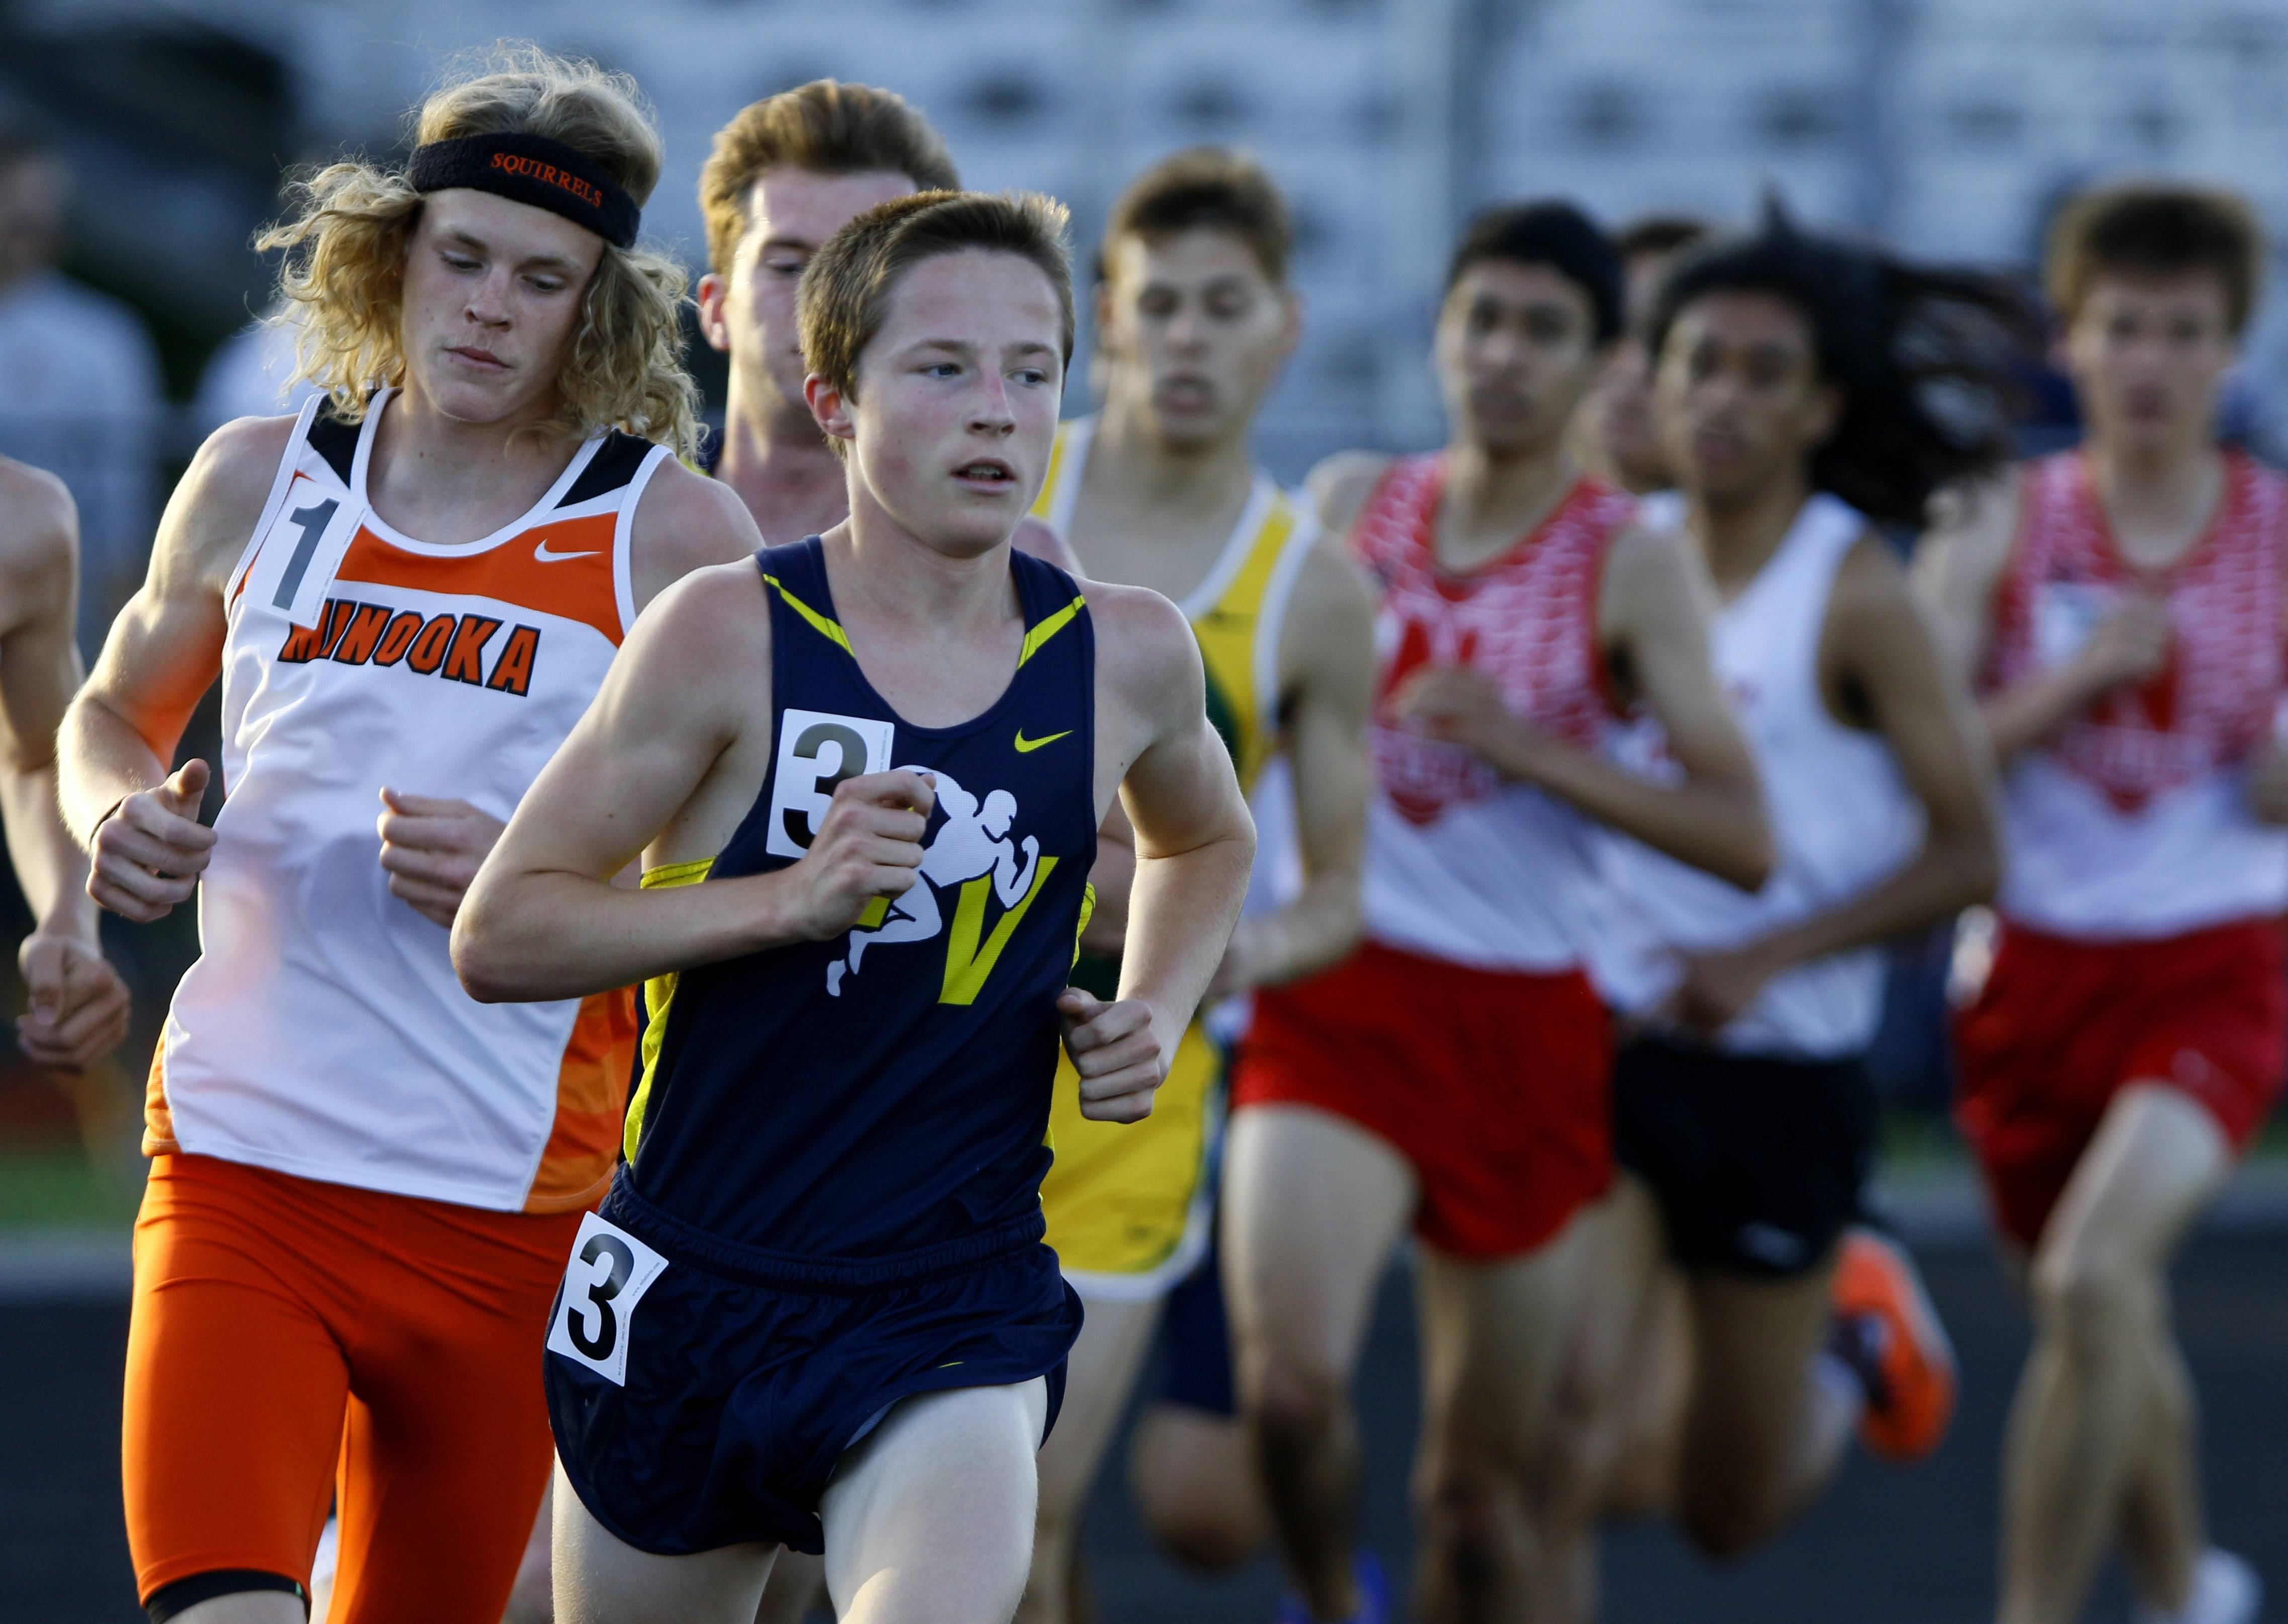 Neuqua Valley's Zachary Kinne gets out to an early lead in the 3200 meter run during the Naperville North boys track sectional.